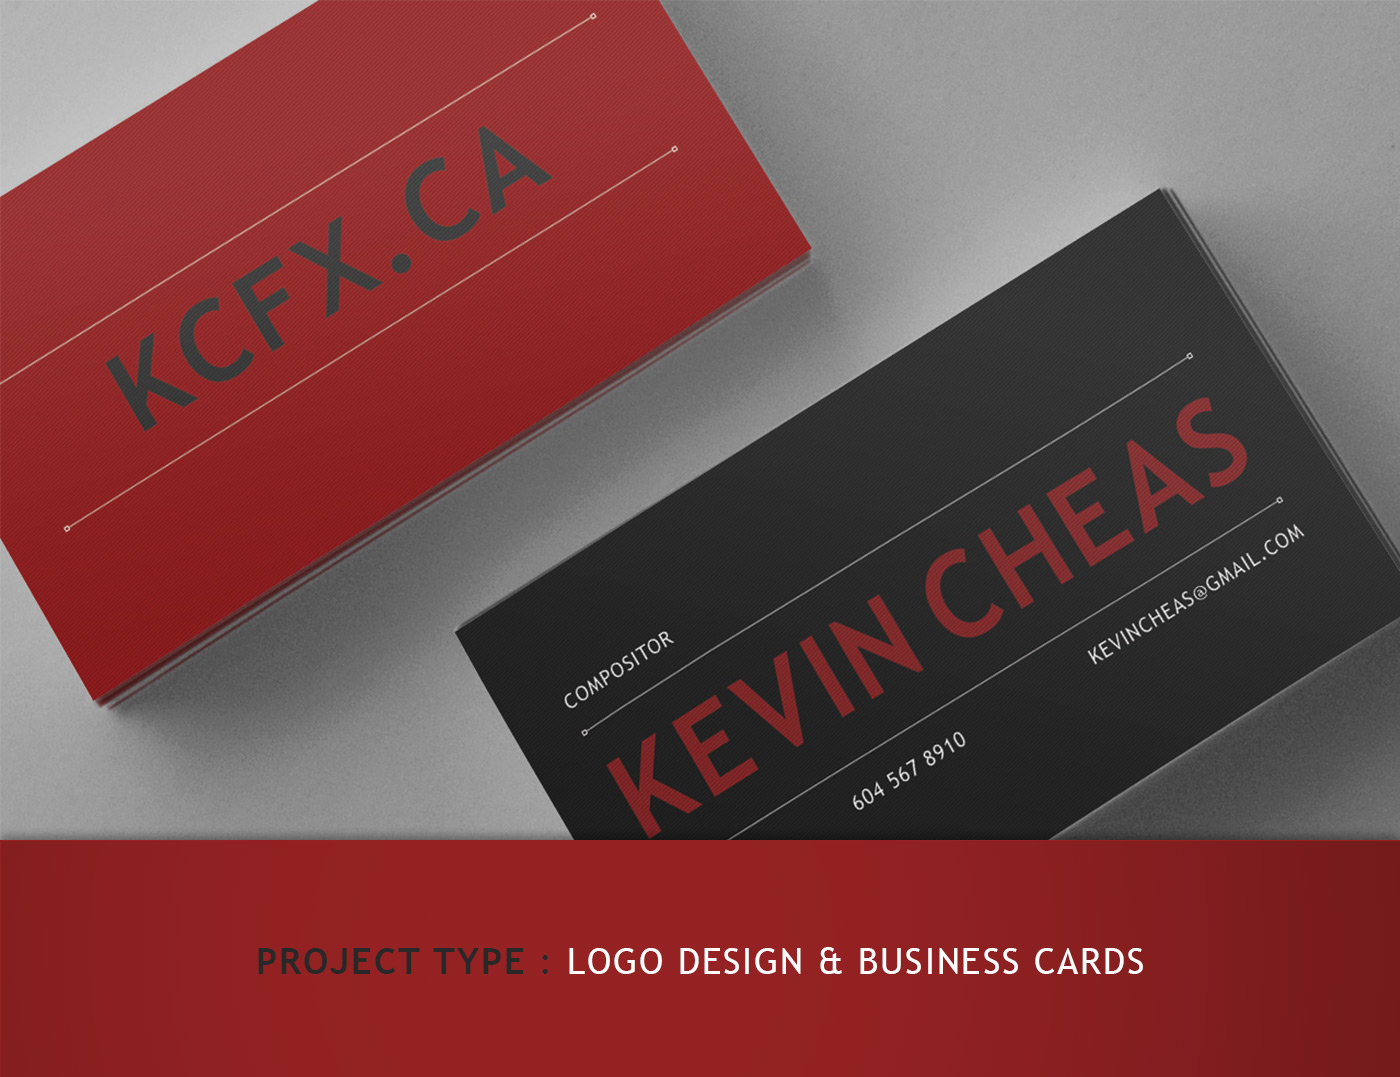 Logo and Business Card Design for Kevin Cheas - KCFX.CA on Behance